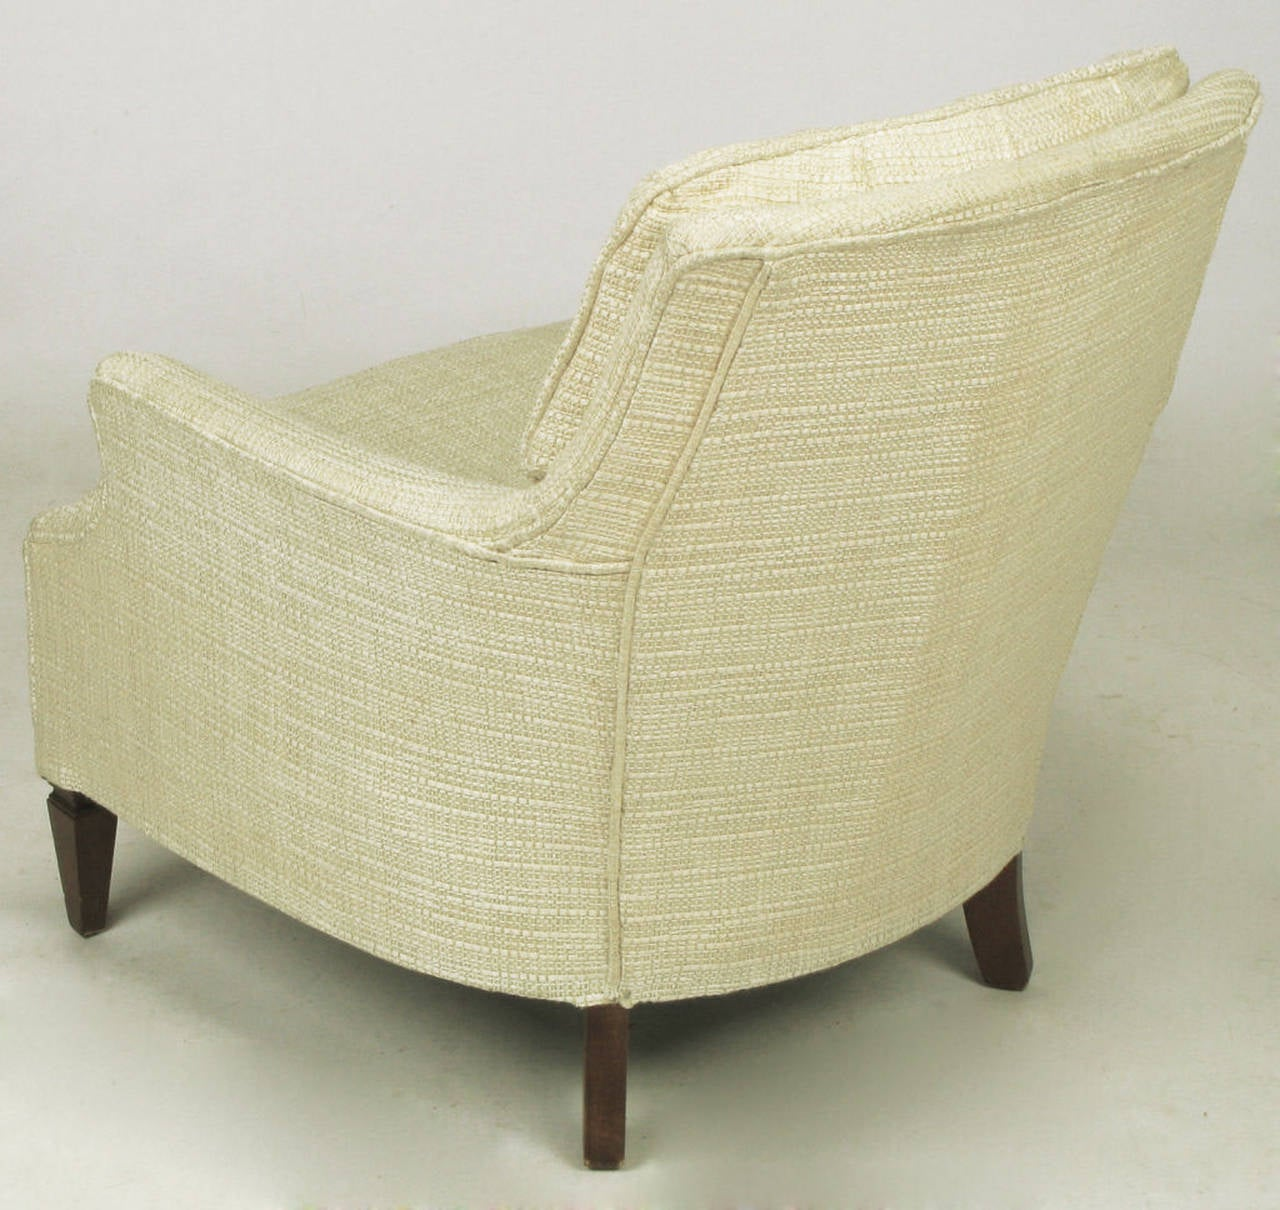 Button Tufted Creamy Linen Lounge Chair and Ottoman For Sale at 1stdibs